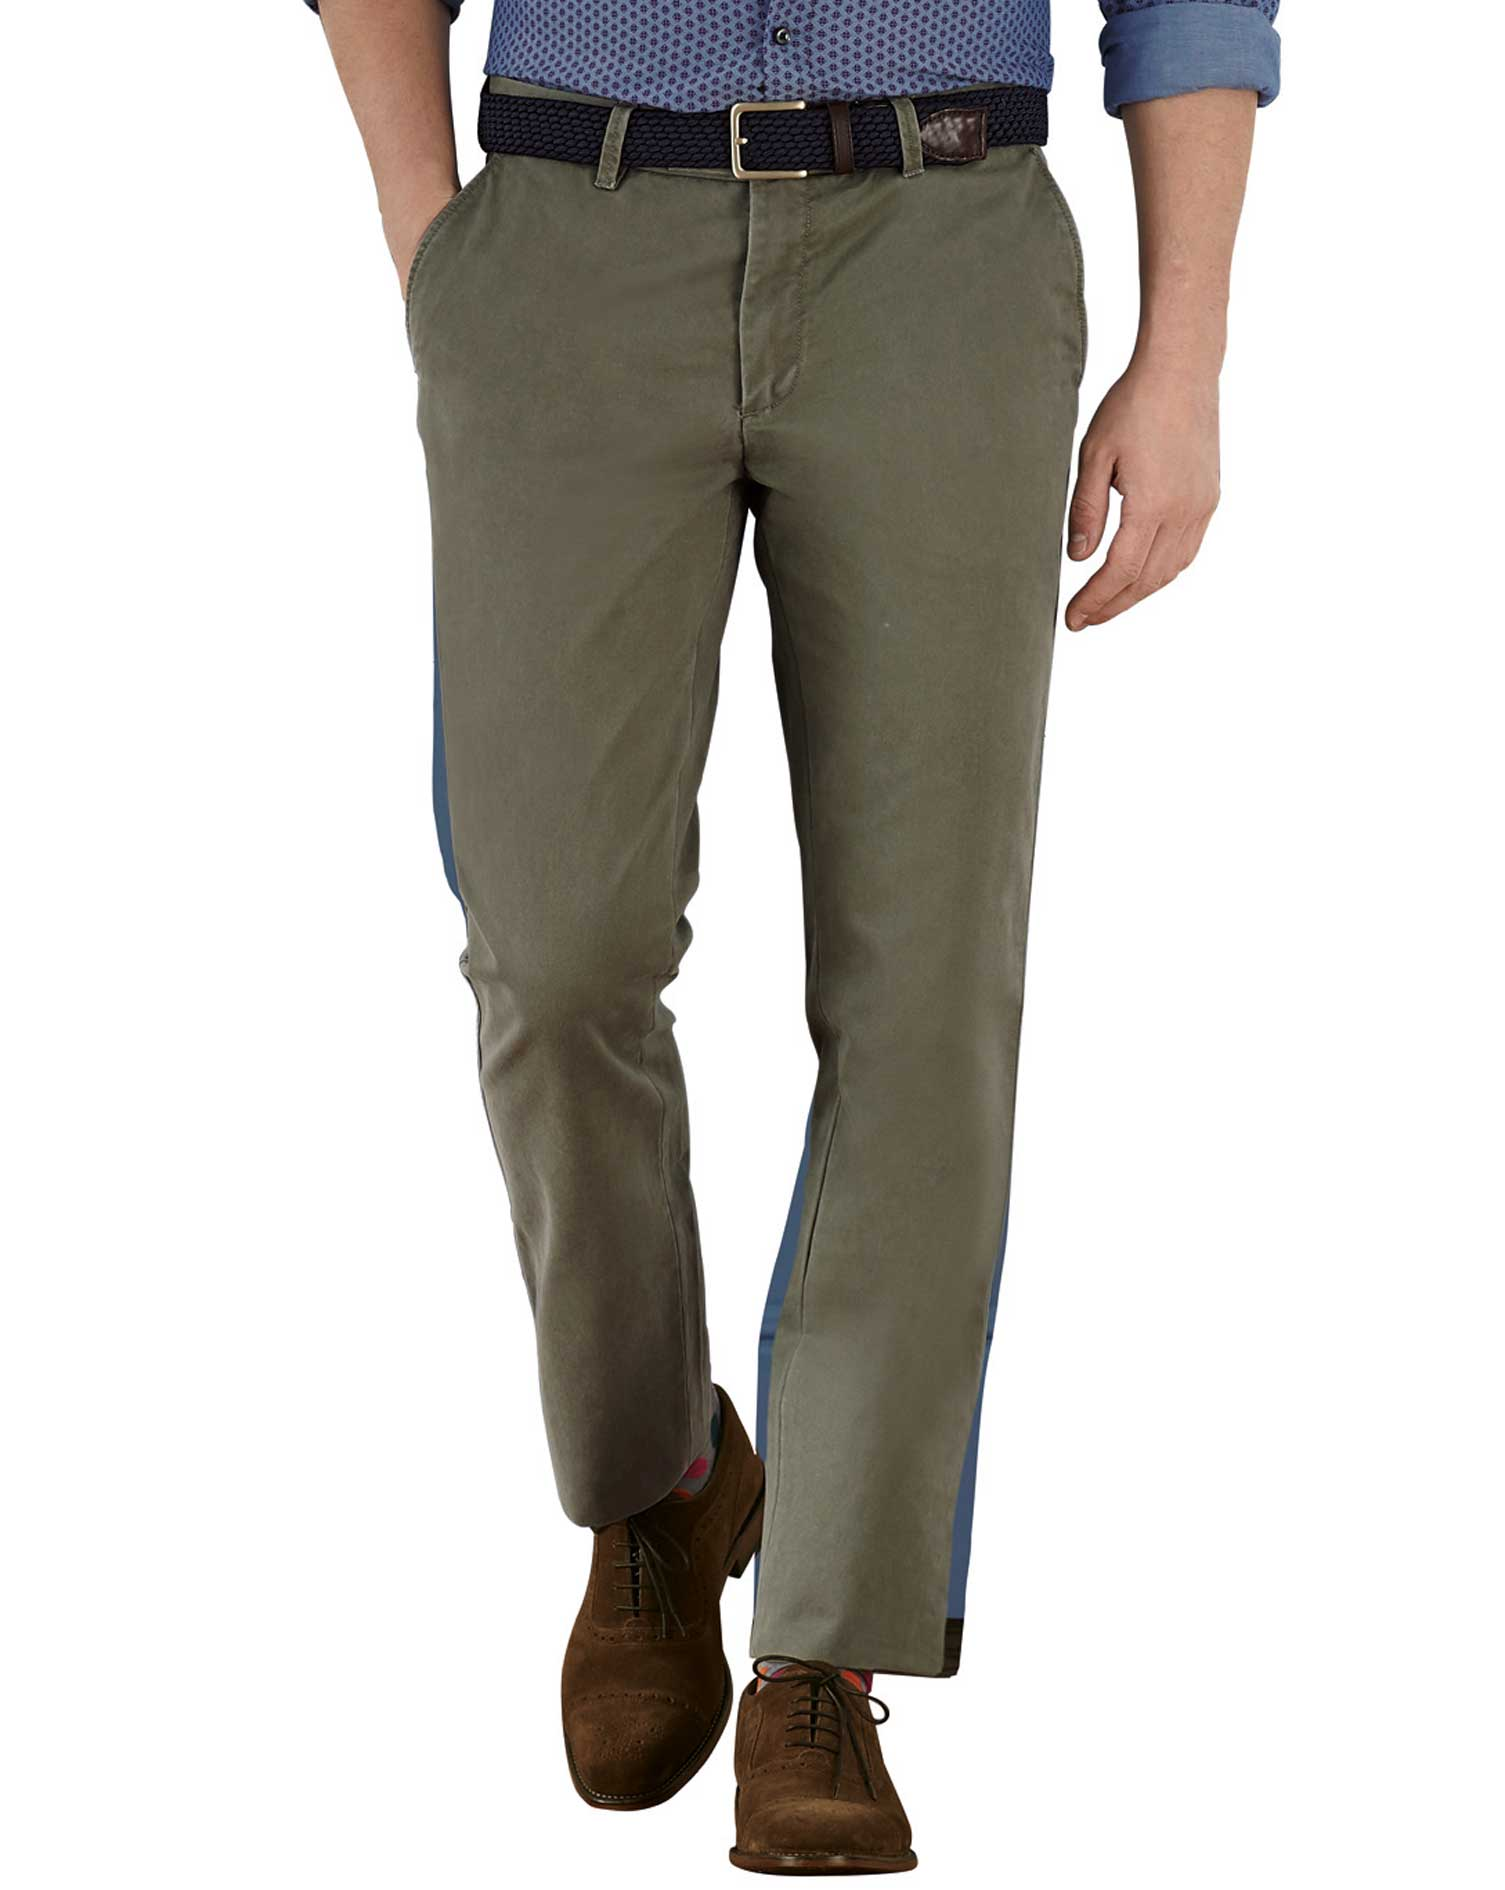 Olive Extra Slim Fit Flat Front Cotton Chino Trousers Size W36 L30 by Charles Tyrwhitt